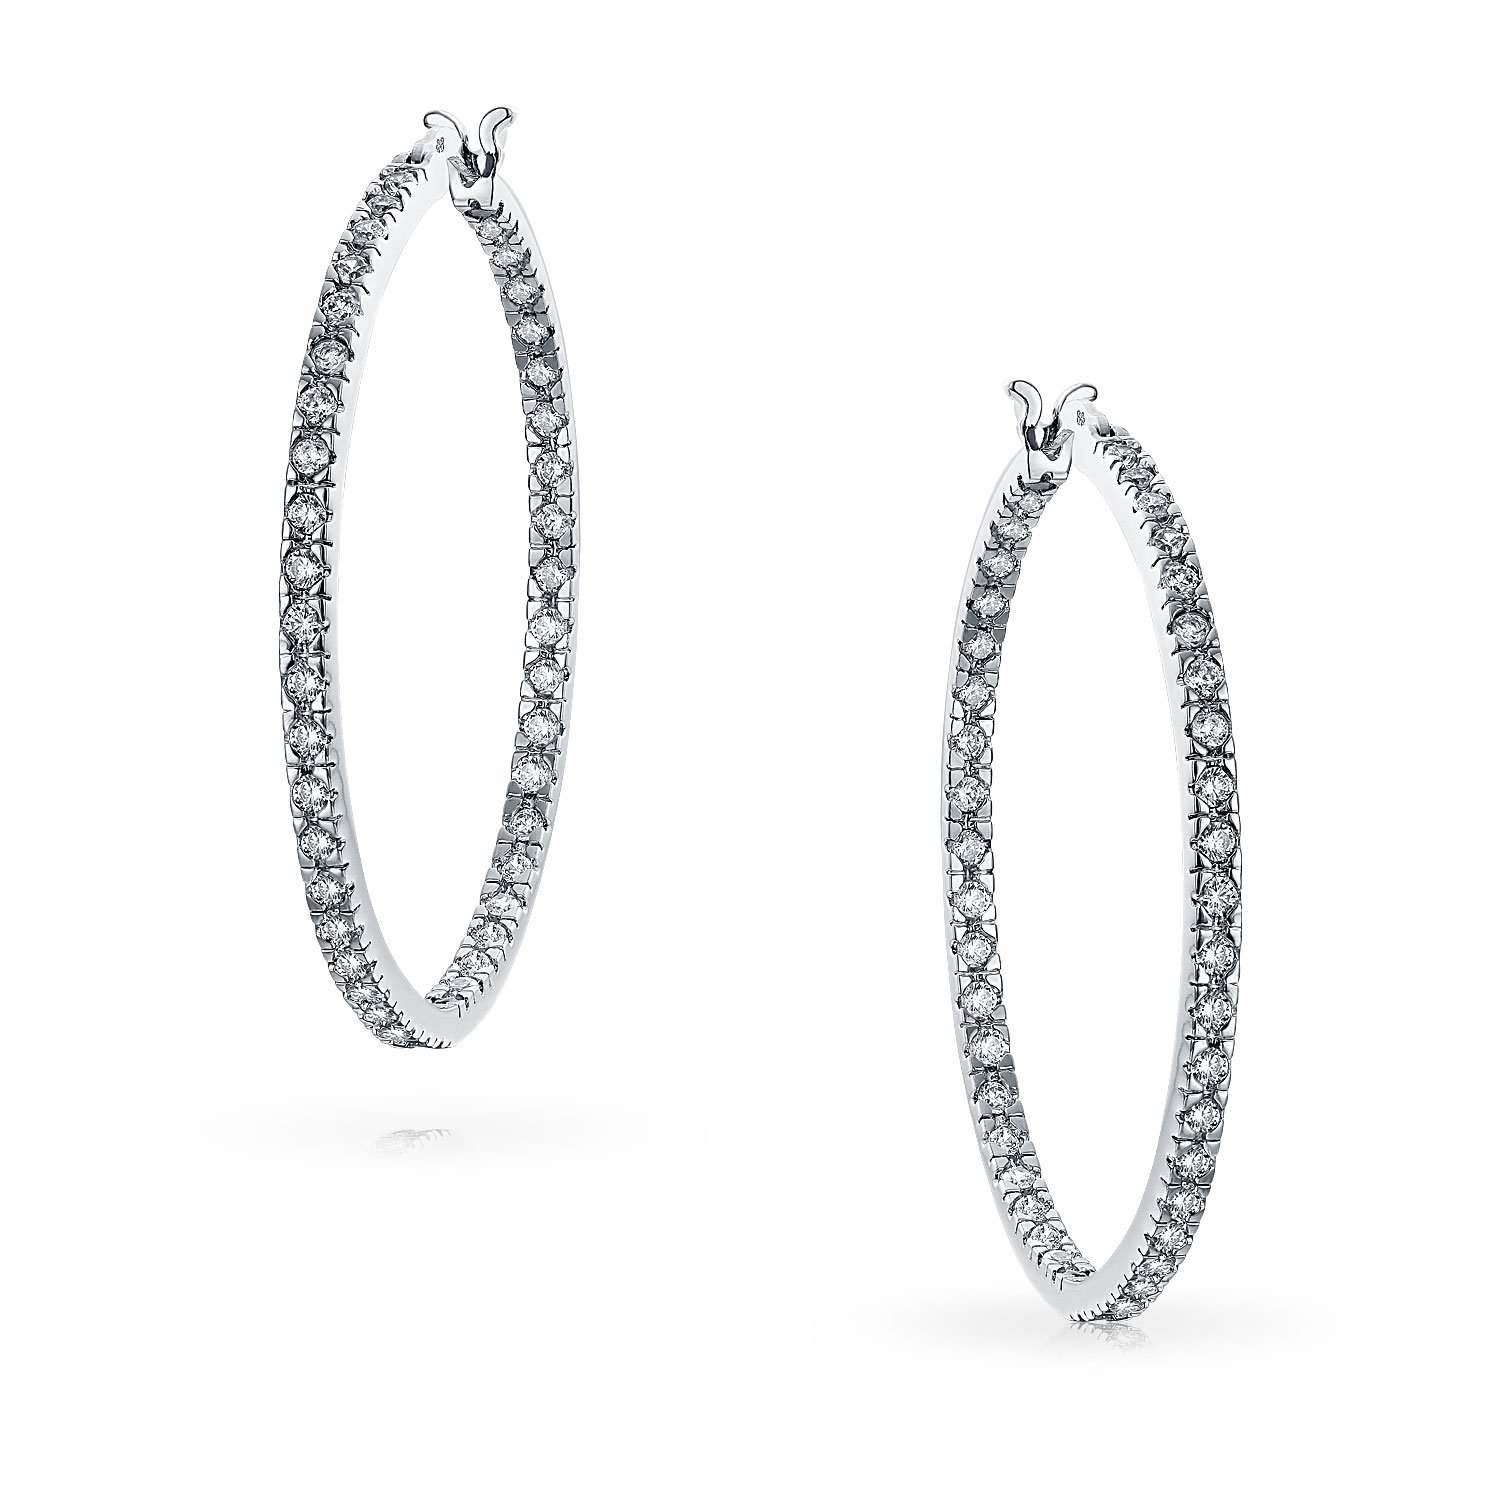 96783f4a66cf04 Amazon.com: White Cubic Zirconia Pave Thin Inside Out Big Hoop Earrings For  Women For Prom Silver Plated Brass 1.75 Inch: Jewelry